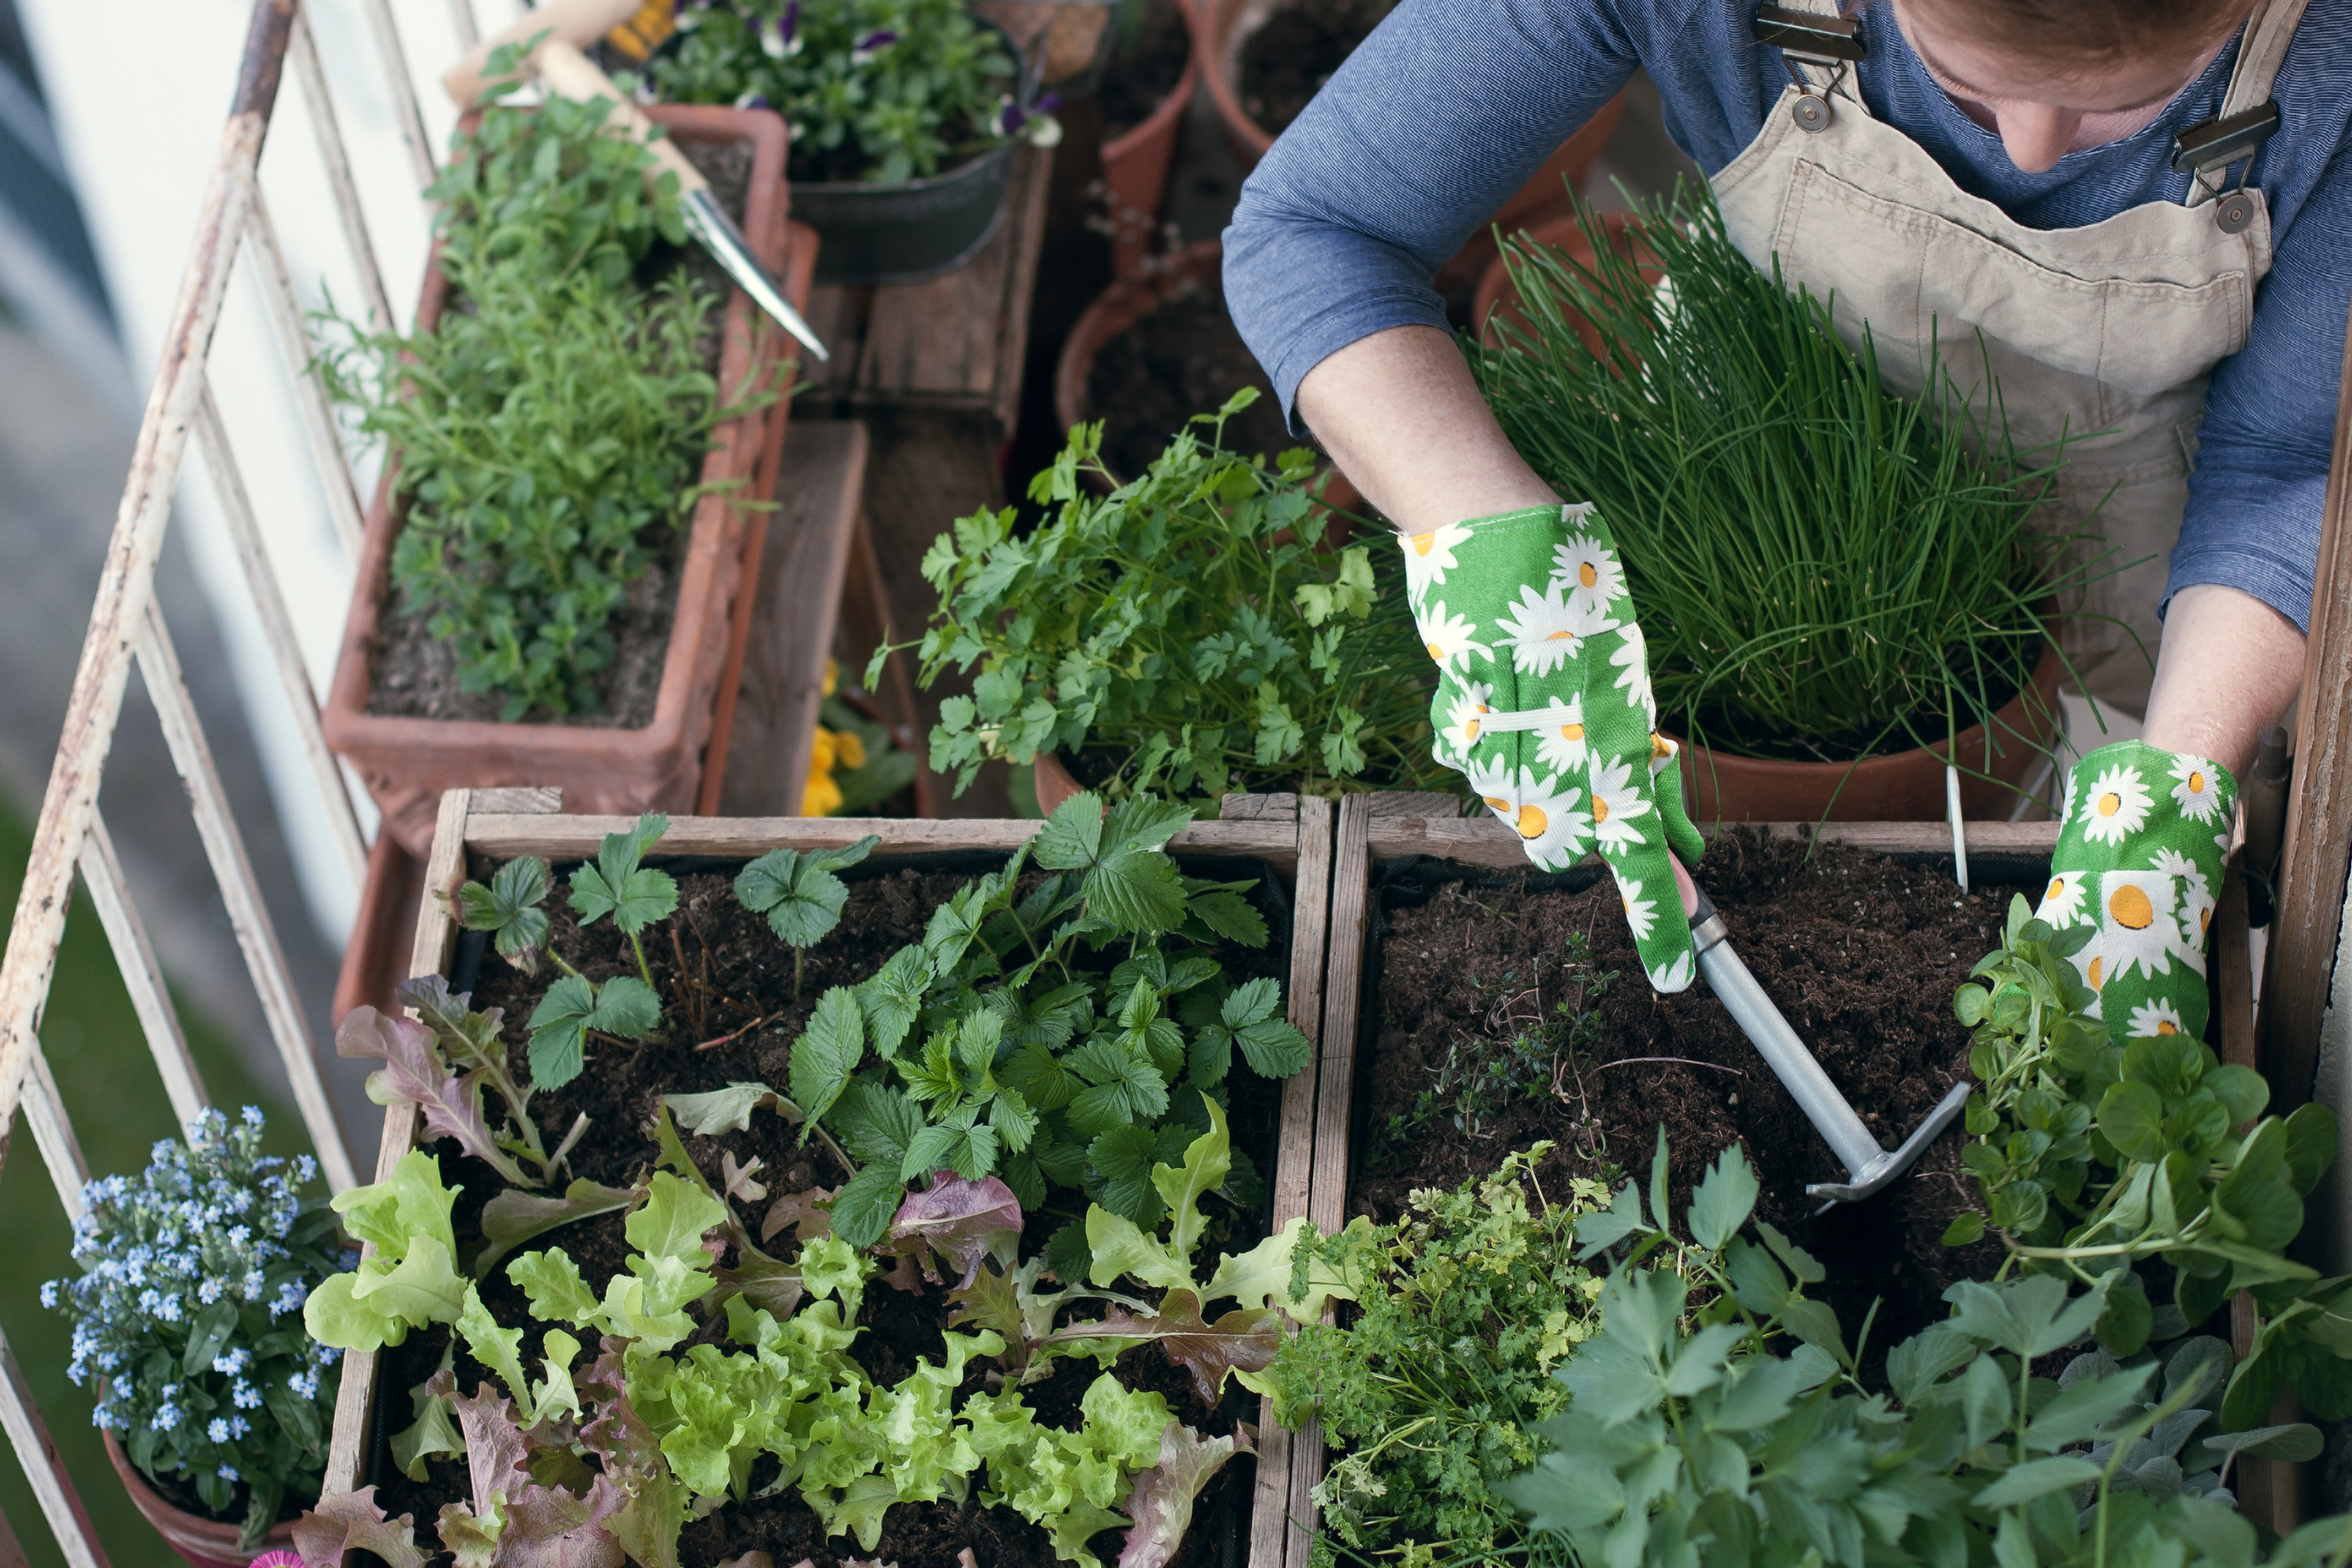 Companion gardening makes sure your plants grow as well as possible. If you're planting a herb garden, you'll want to know these tips for companion planting herbs.